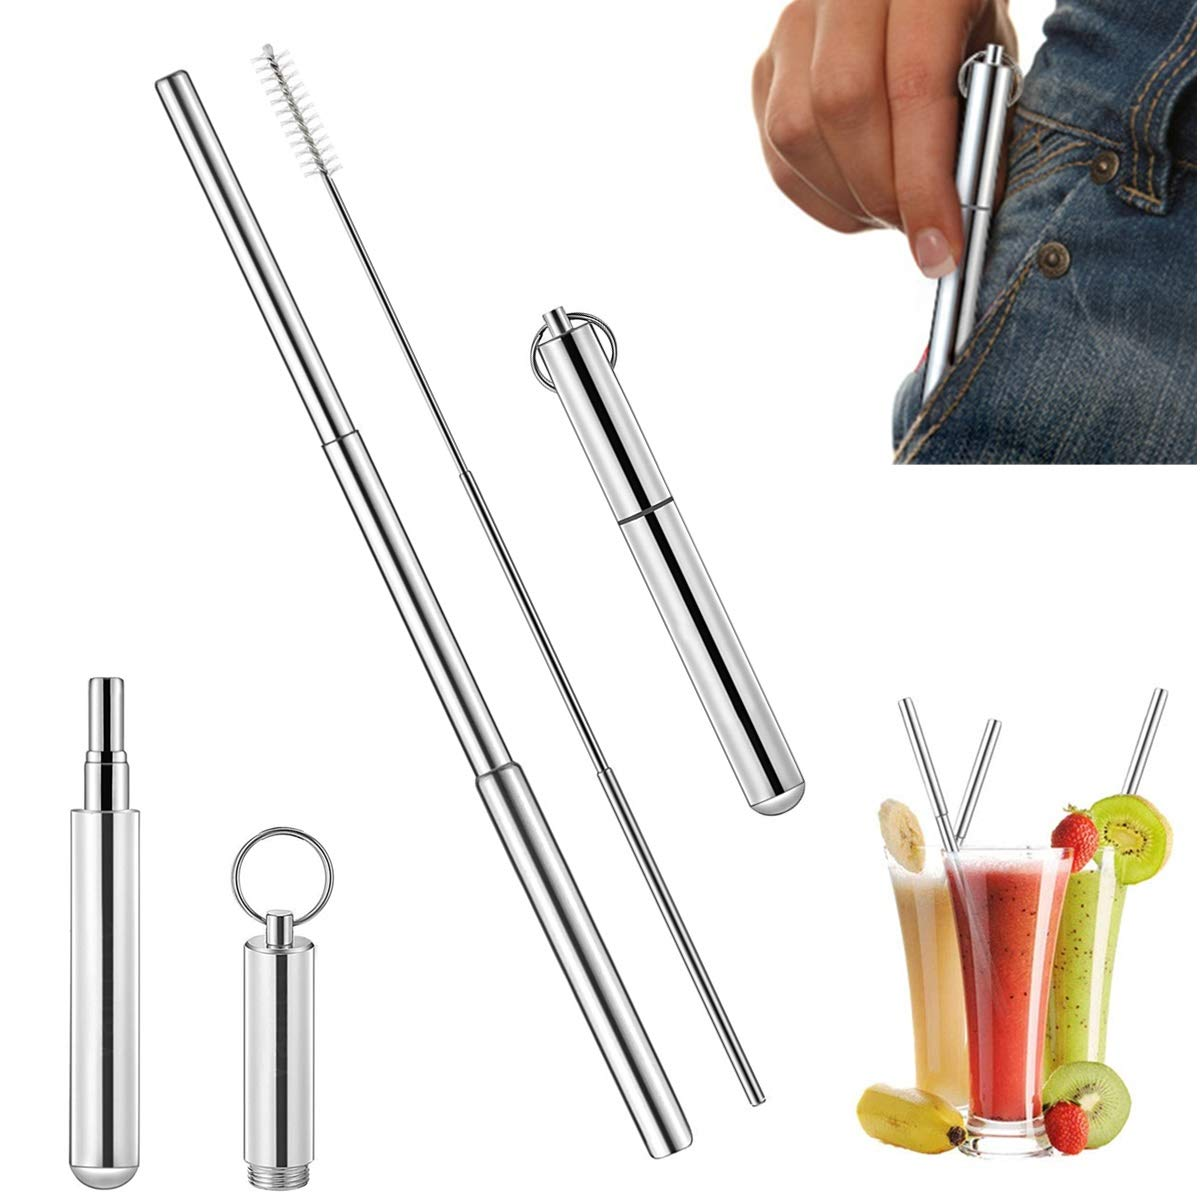 Office and Travel Sweethos Portable Stainless Steel Drinking Straw Telescopic Straight Reusable Washable Stainless Steel Straws for Home